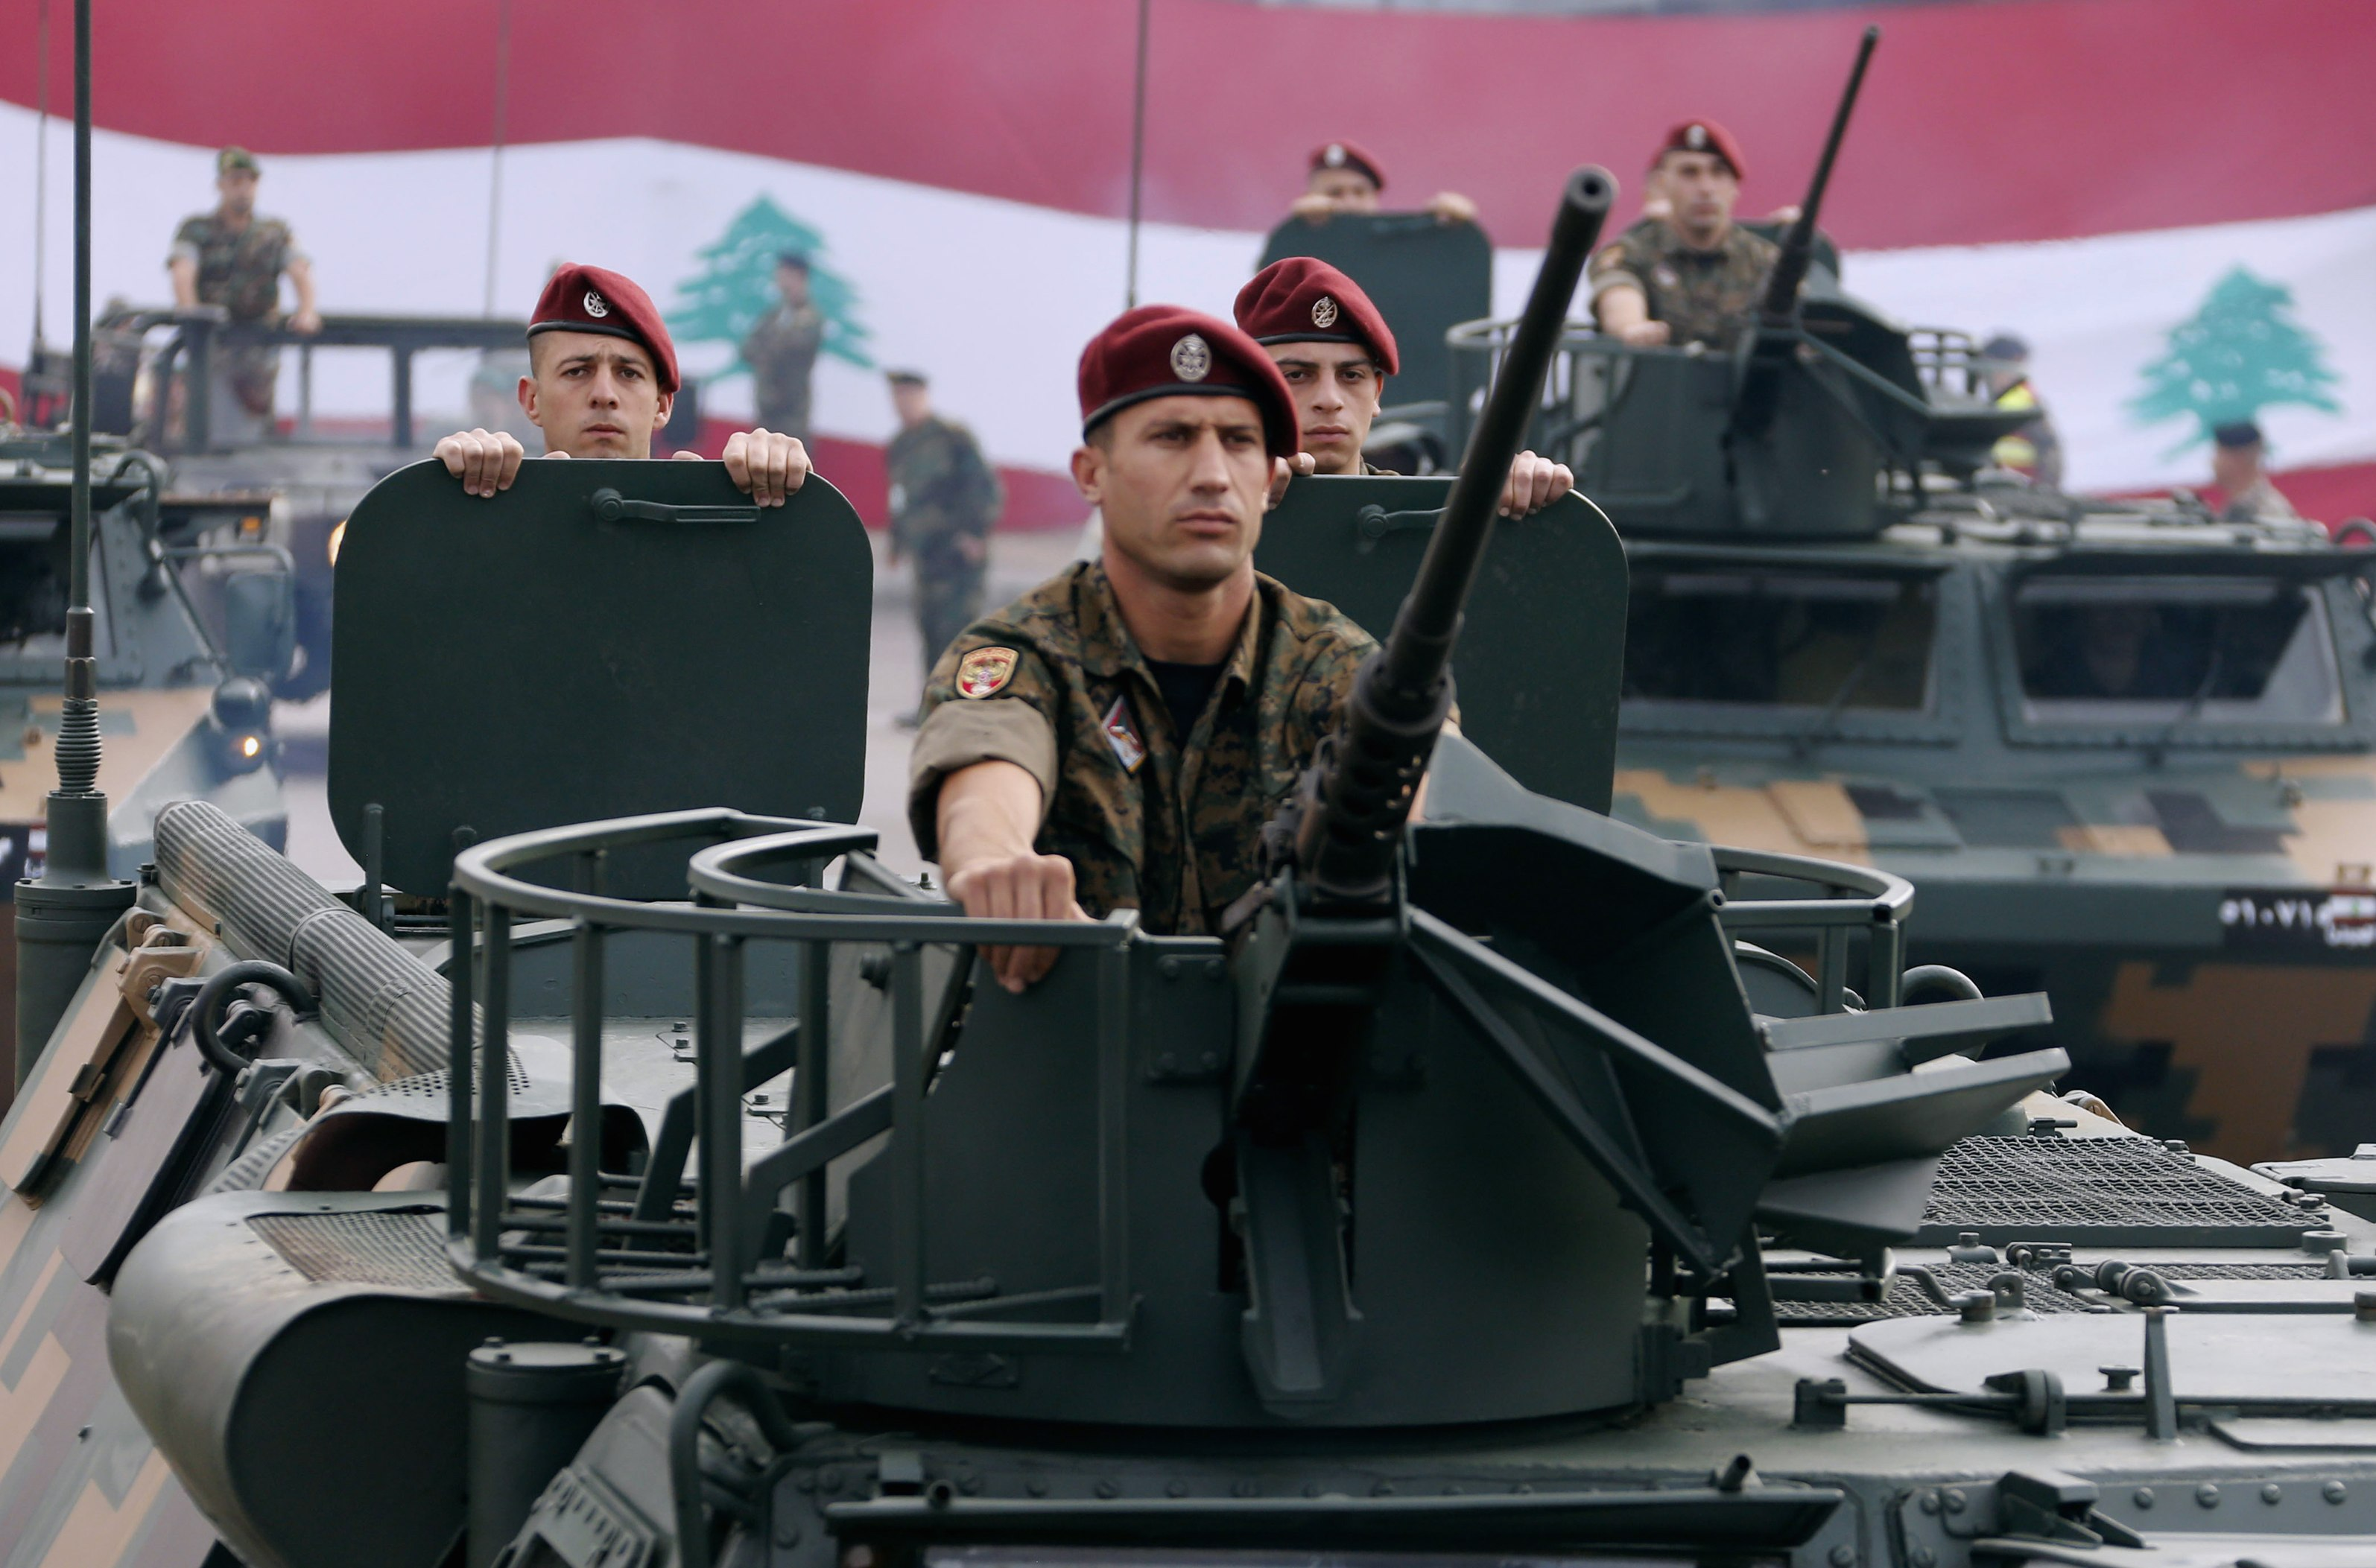 Lebanese Army soldiers on their military vehicles take part in a military parade to celebrate the 70th anniversary of Lebanon's independence, in downtown Beirut November 22, 2013. REUTERS/Mohamed Azakir (LEBANON - Tags: ANNIVERSARY POLITICS MILITARY)